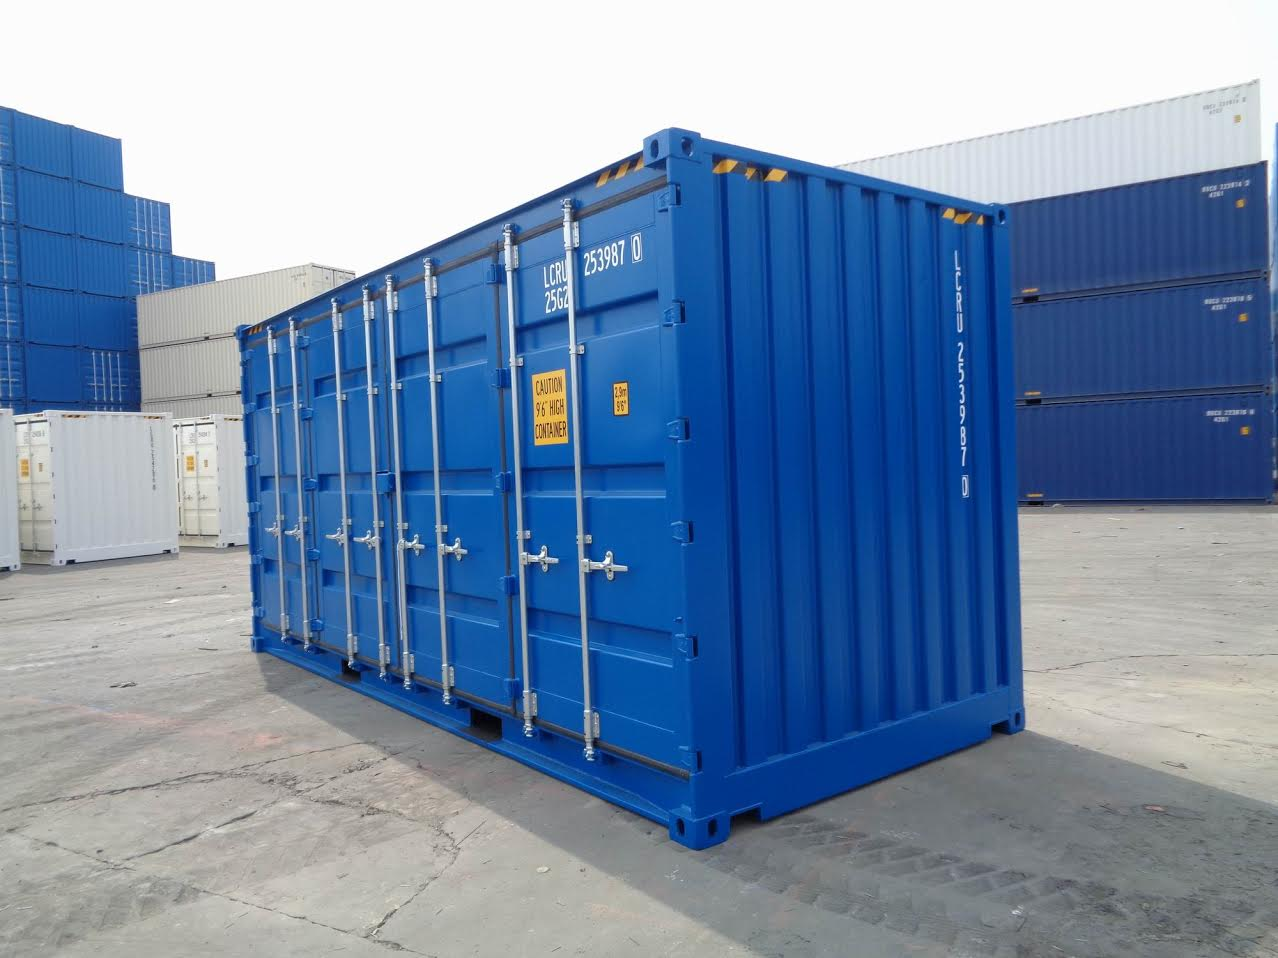 20 foot dry freight container